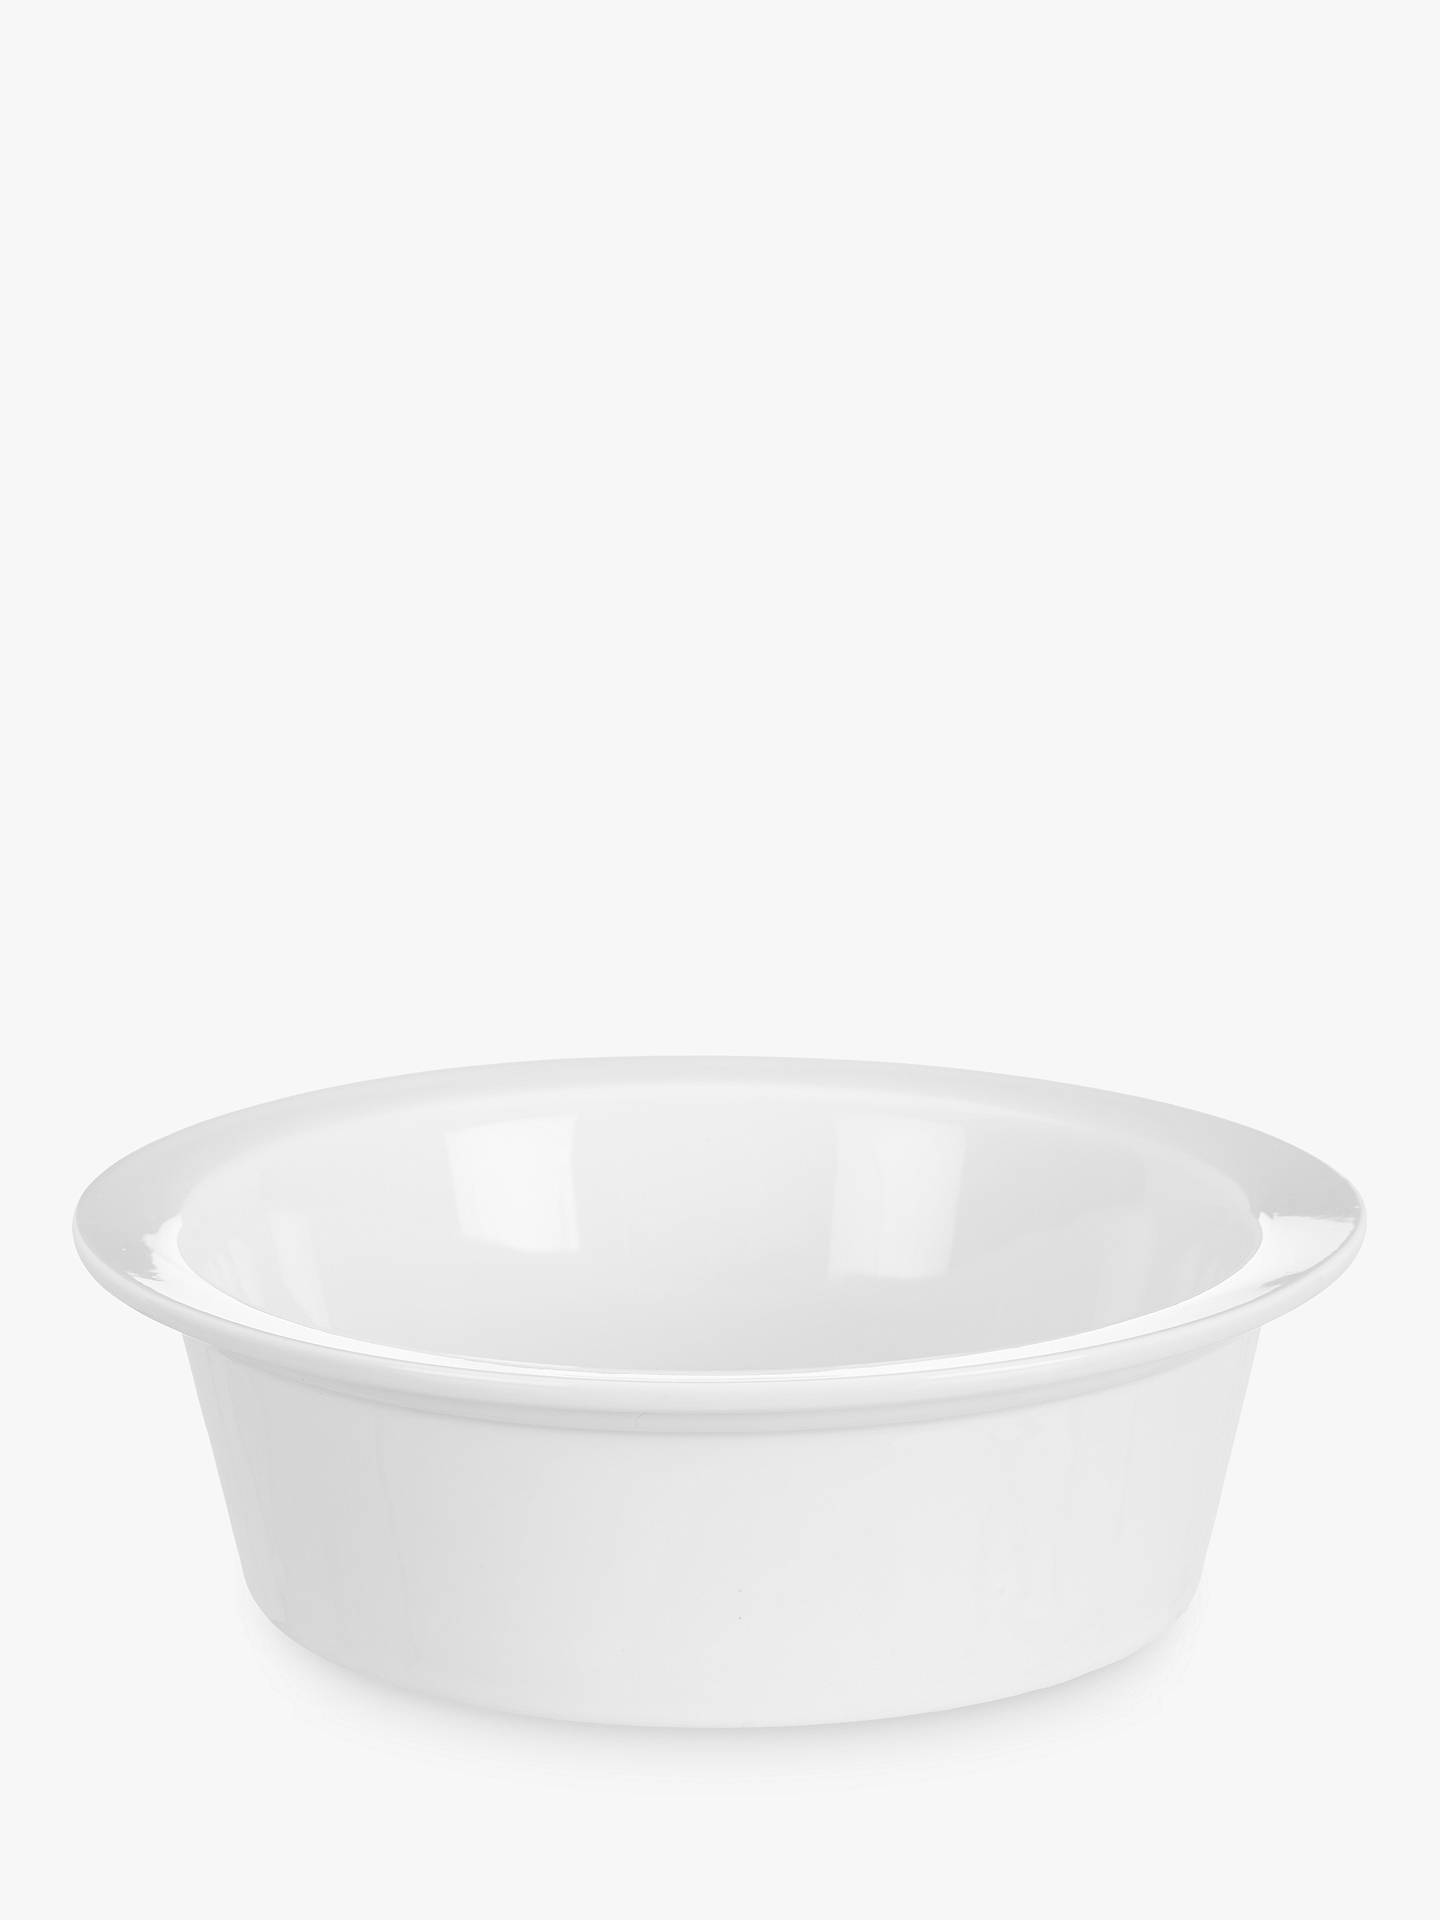 Buy John Lewis & Partners Porcelain Round Individual Pie Oven Dish Online at johnlewis.com